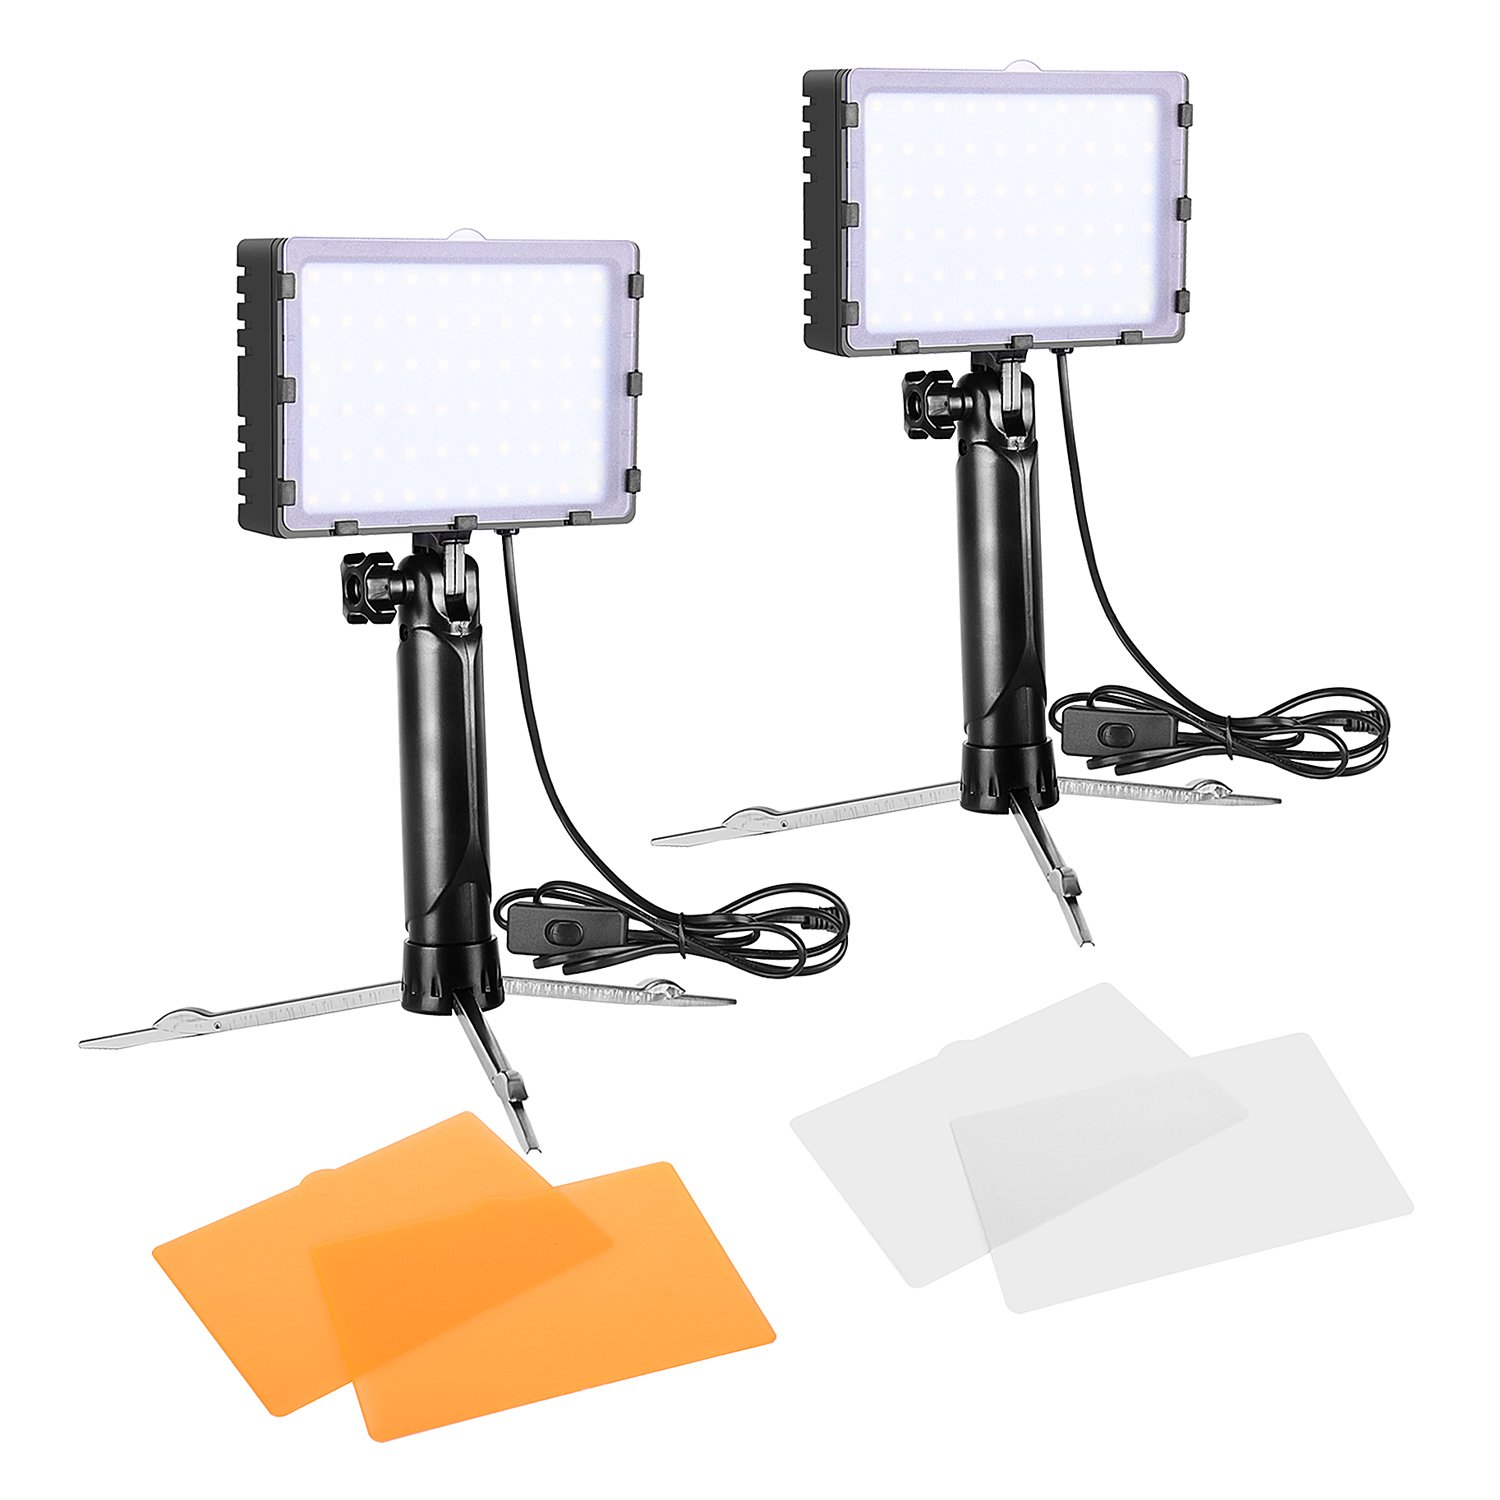 Emart 60 LED Continuous Portable Photography Lighting Kit for Table Top Photo Video Studio Light Lamp with Color Filters - 2 Sets by EMART